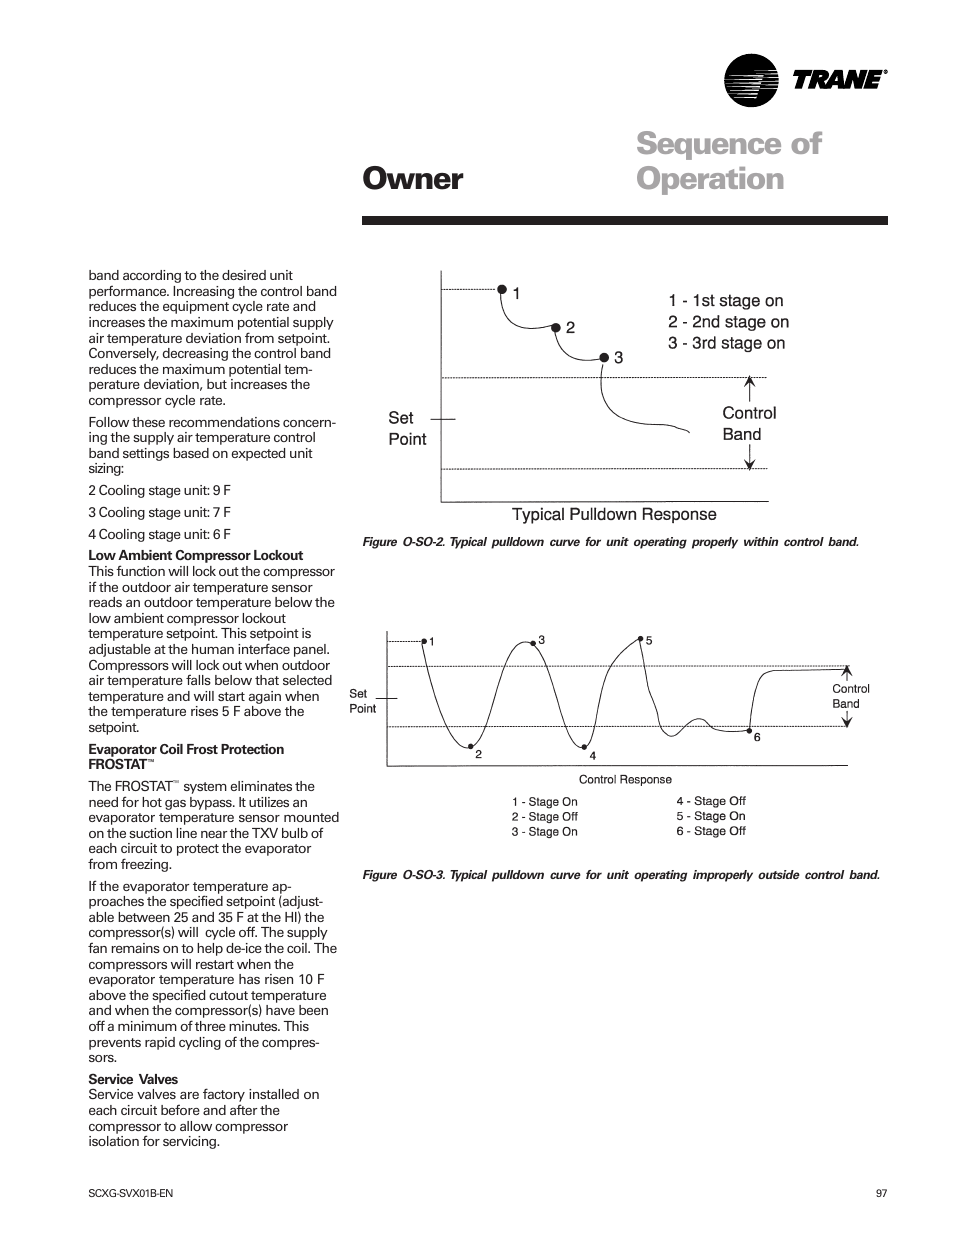 Intellipak Trane Compressor Wiring Diagram Baystat 150a Owner Sequence Of Operation Scwg 020 User Manual On